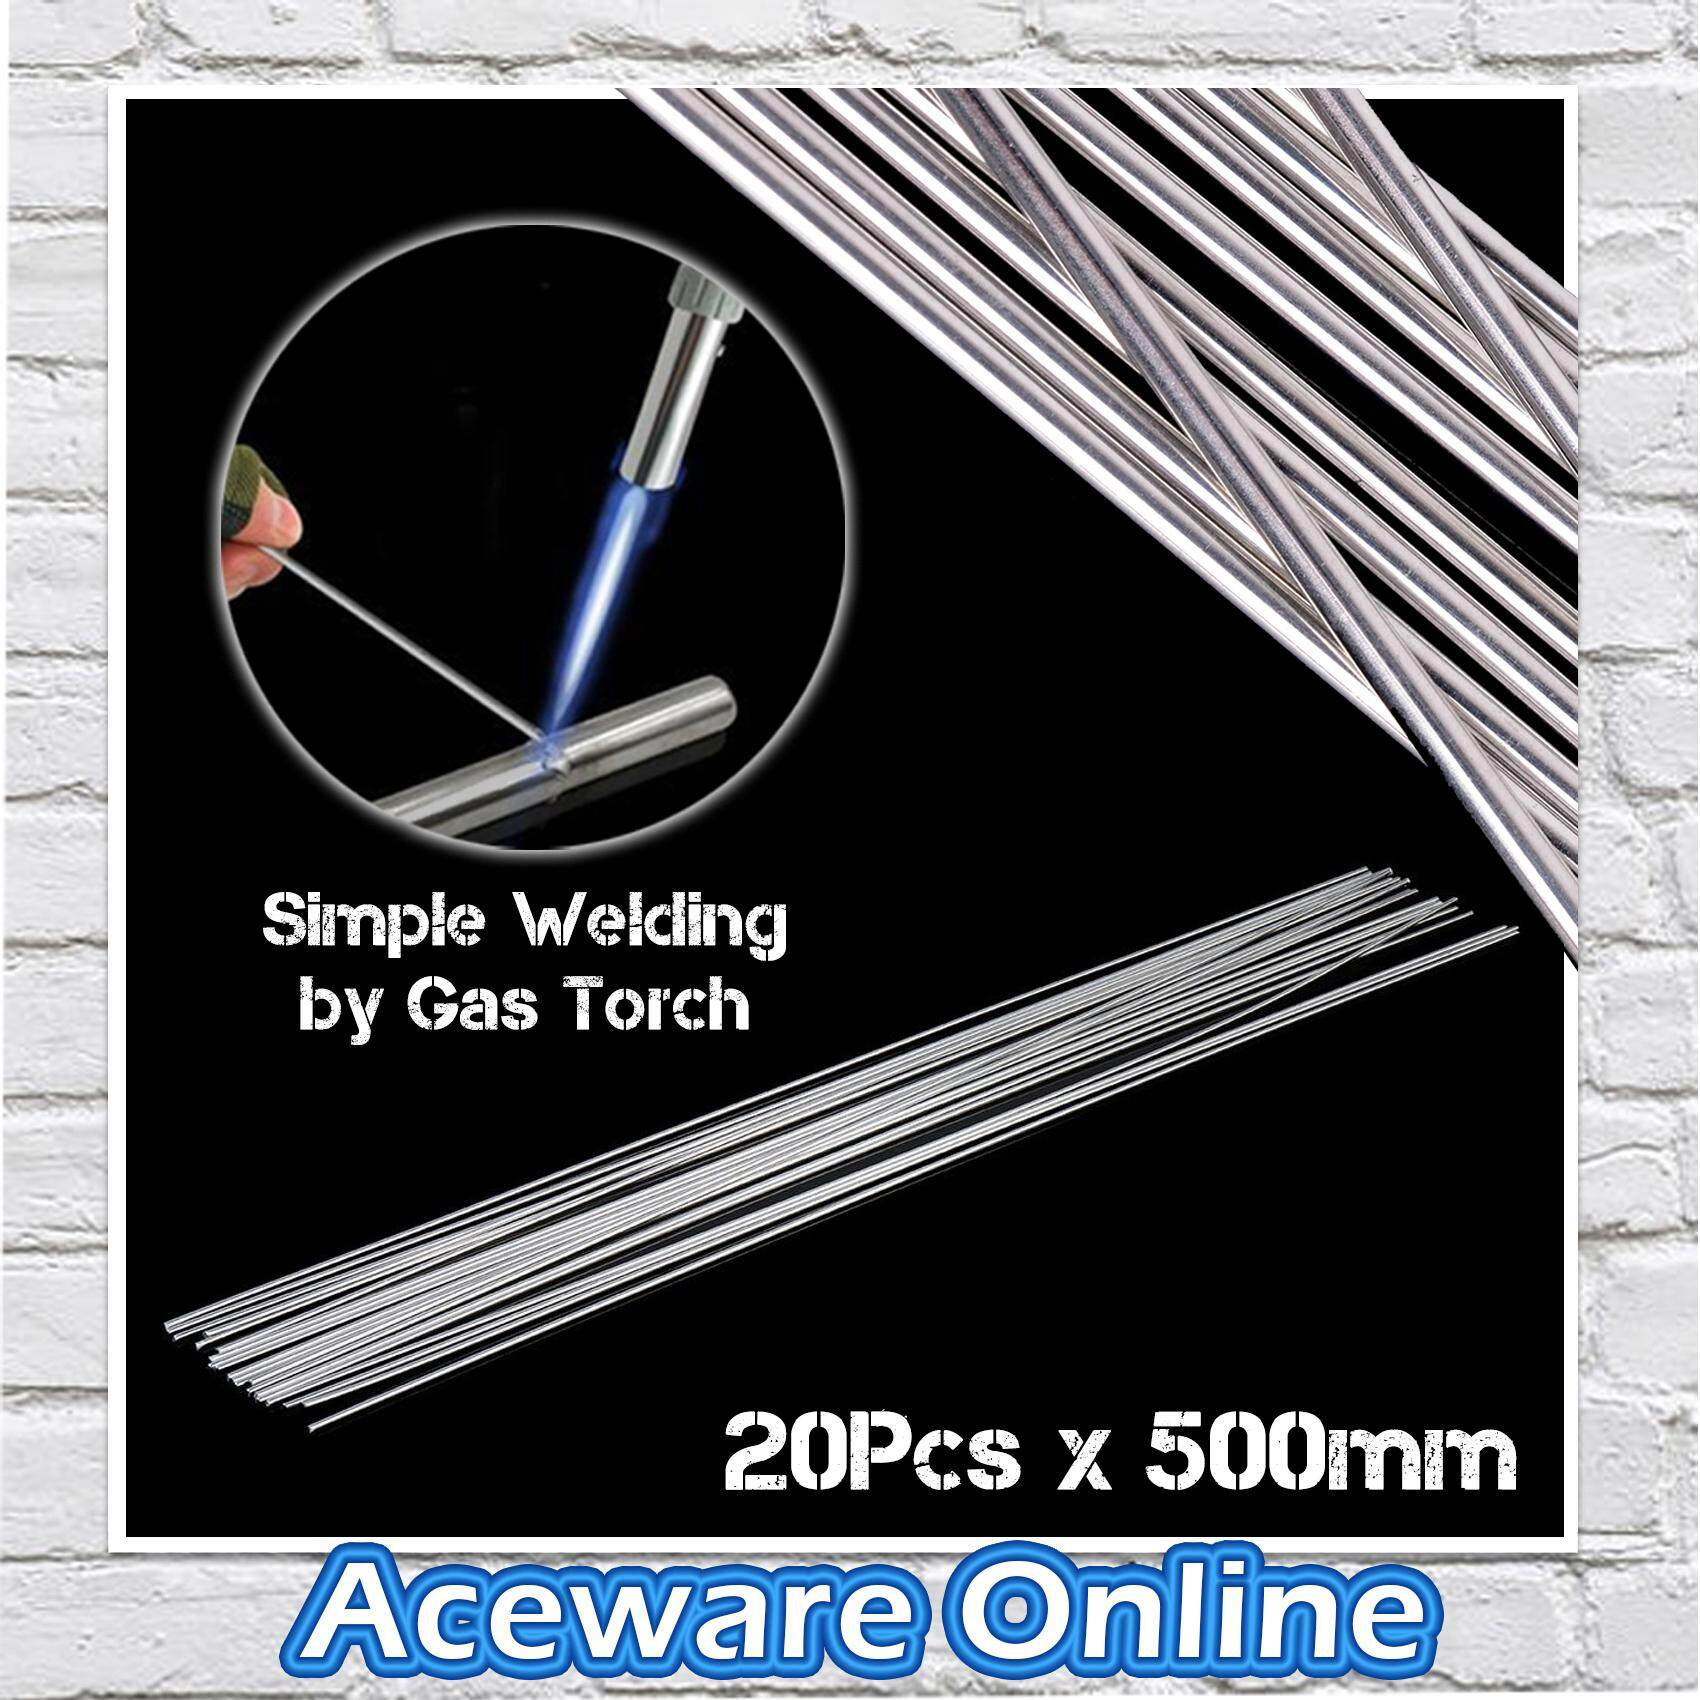 20PCS 2.4MM X 500MM Low Temperature Aluminium Welding Wire Rod Electrode Welding Stick Soldering 500mm